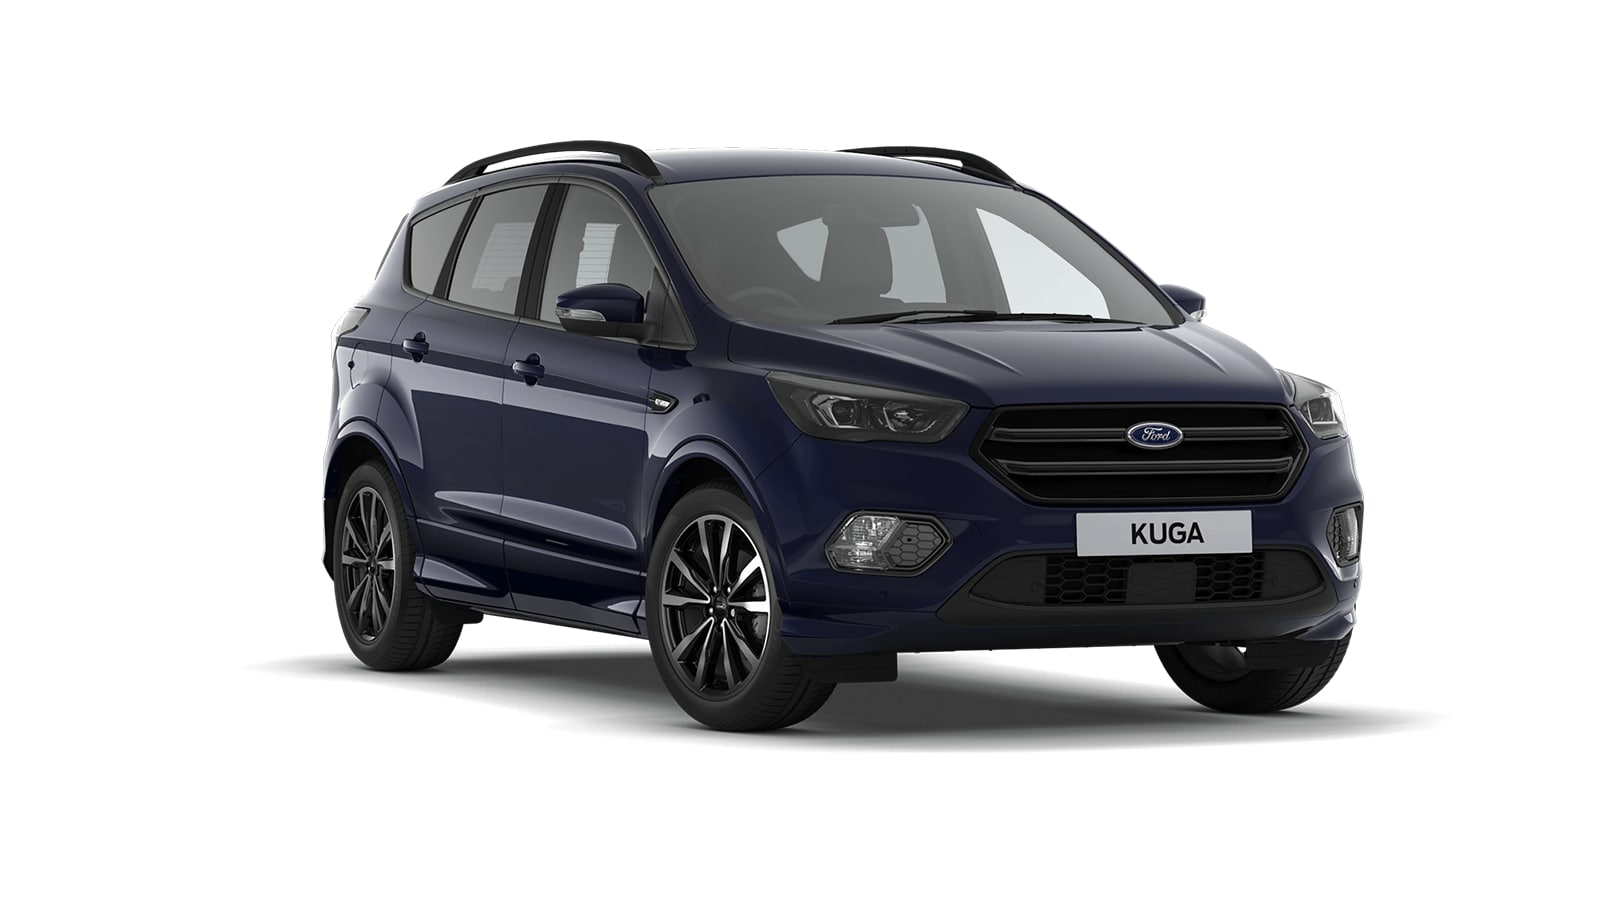 Ford Kuga at Balmoral Garage